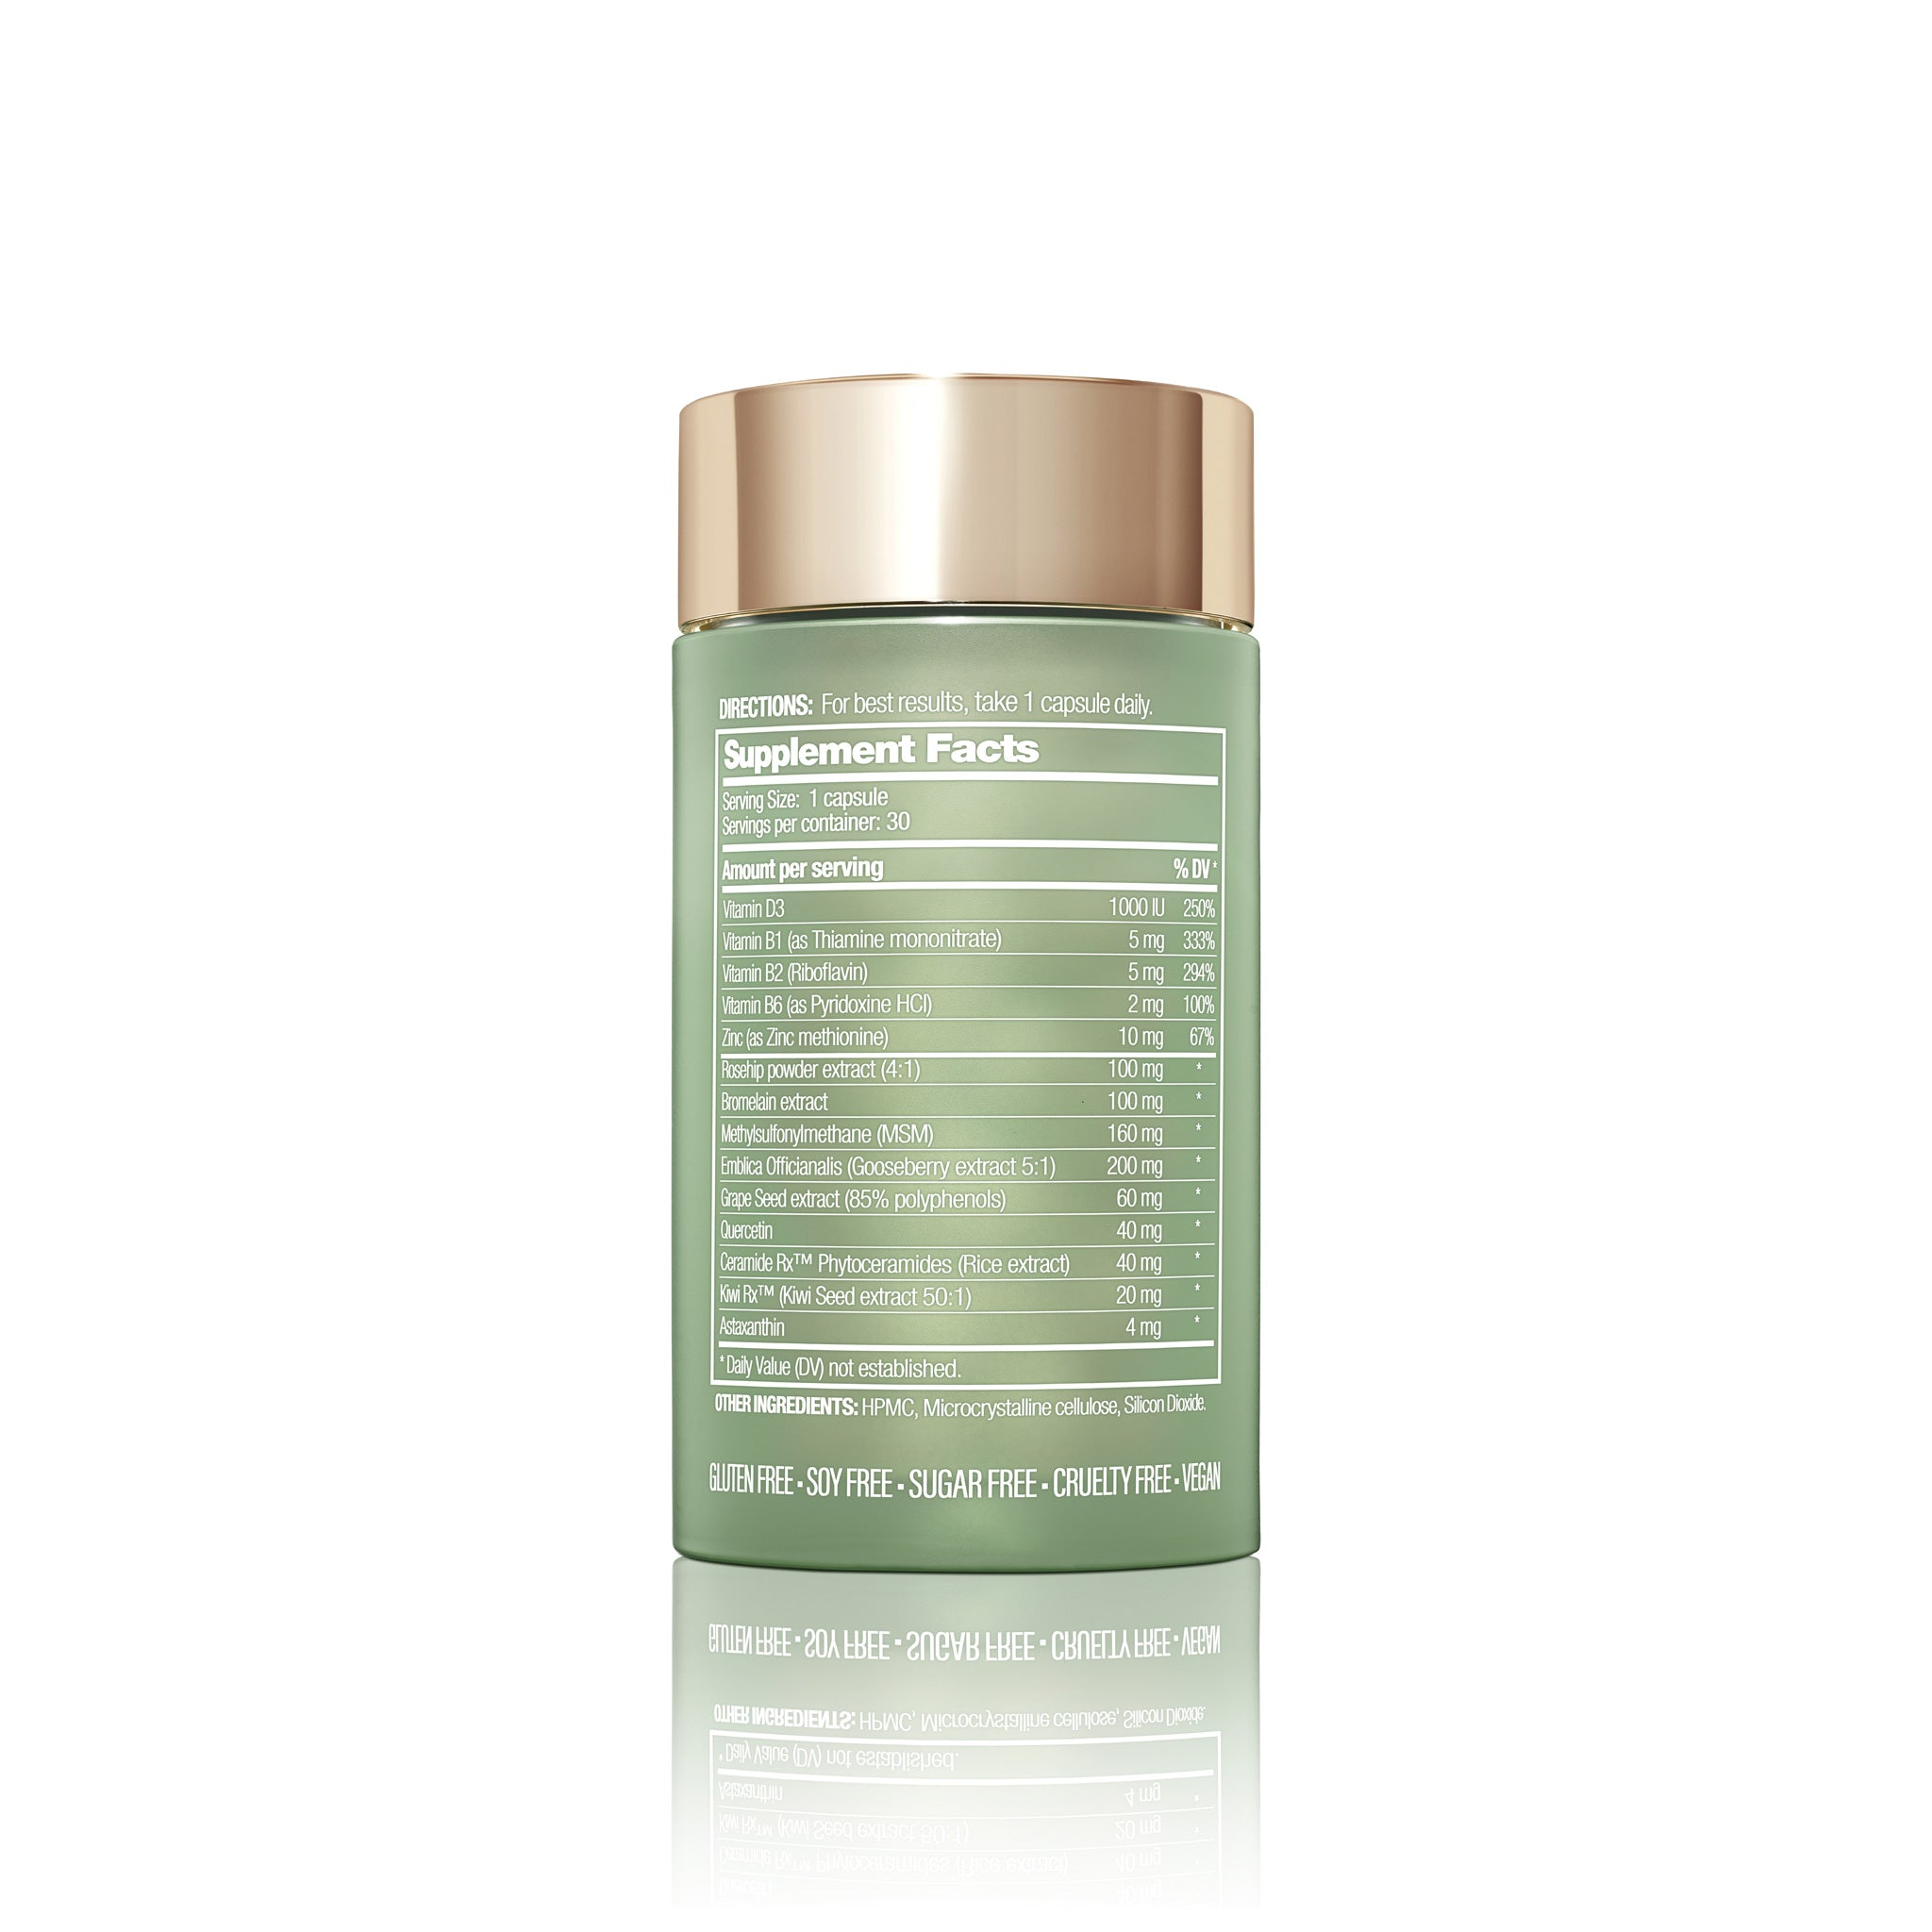 Halo Beauty Kiwi Skin Booster